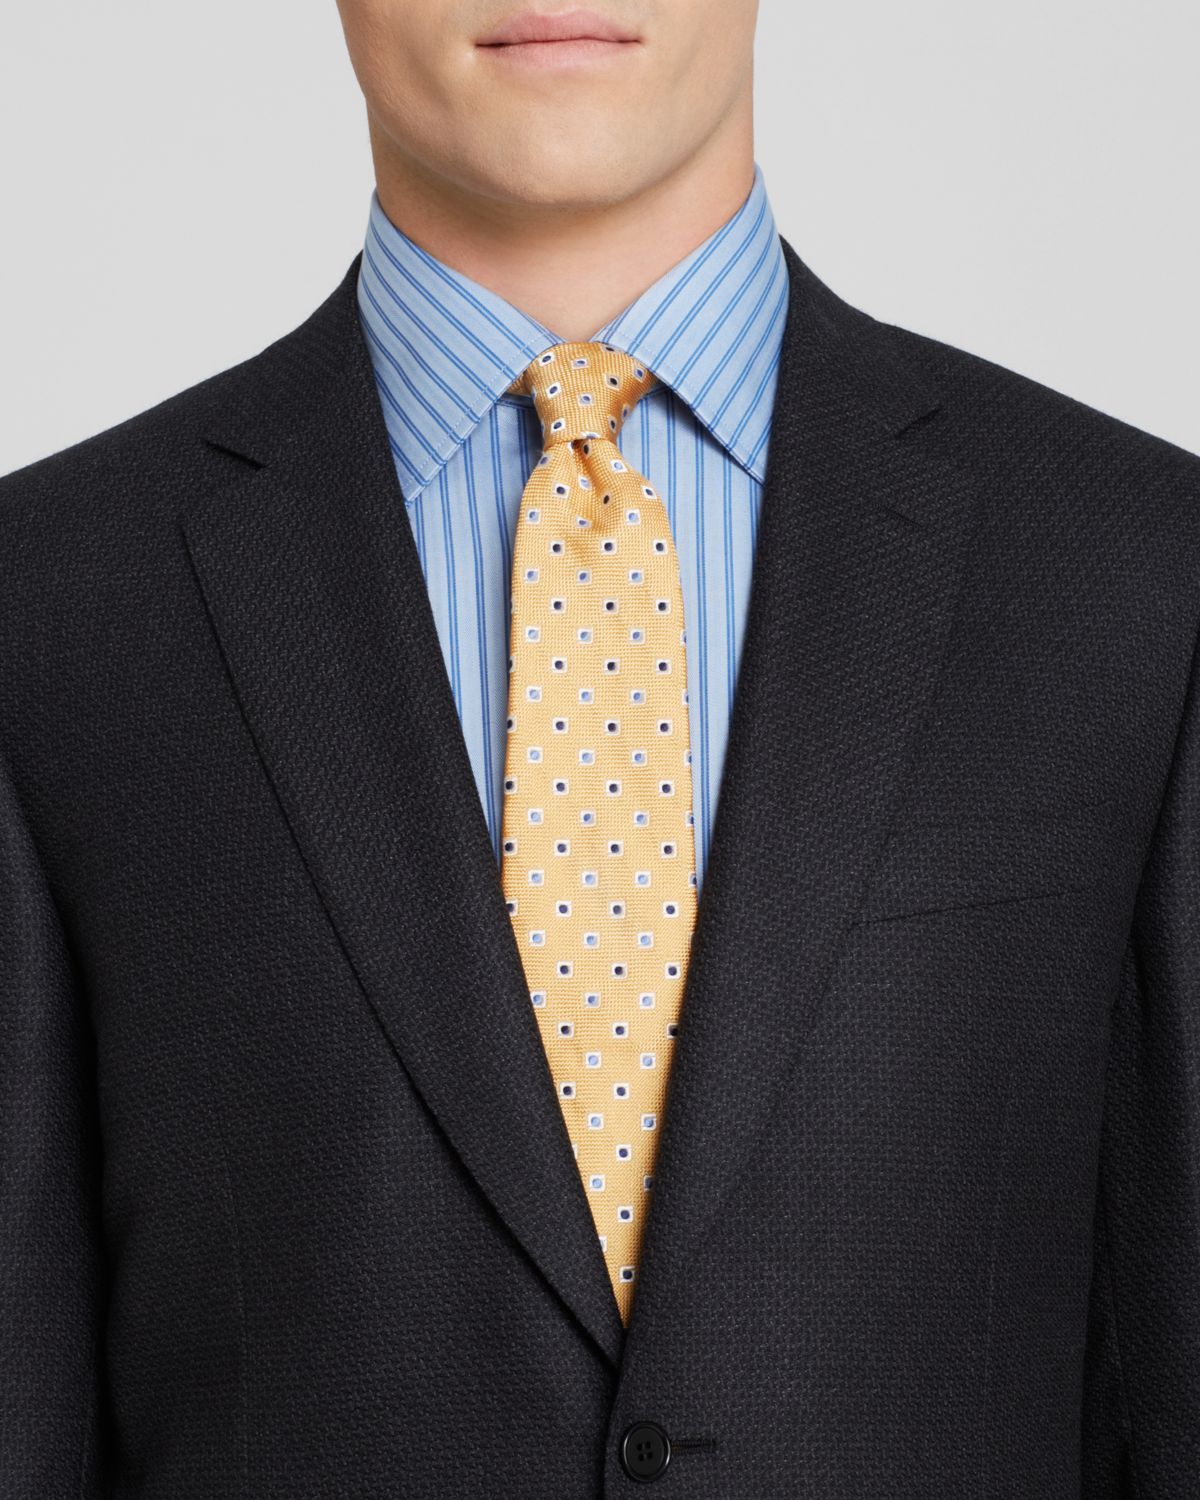 664e8845acd8f5 Canali Firenze Basket Weave Suit - Classic Fit - Bloomingdale'S ...